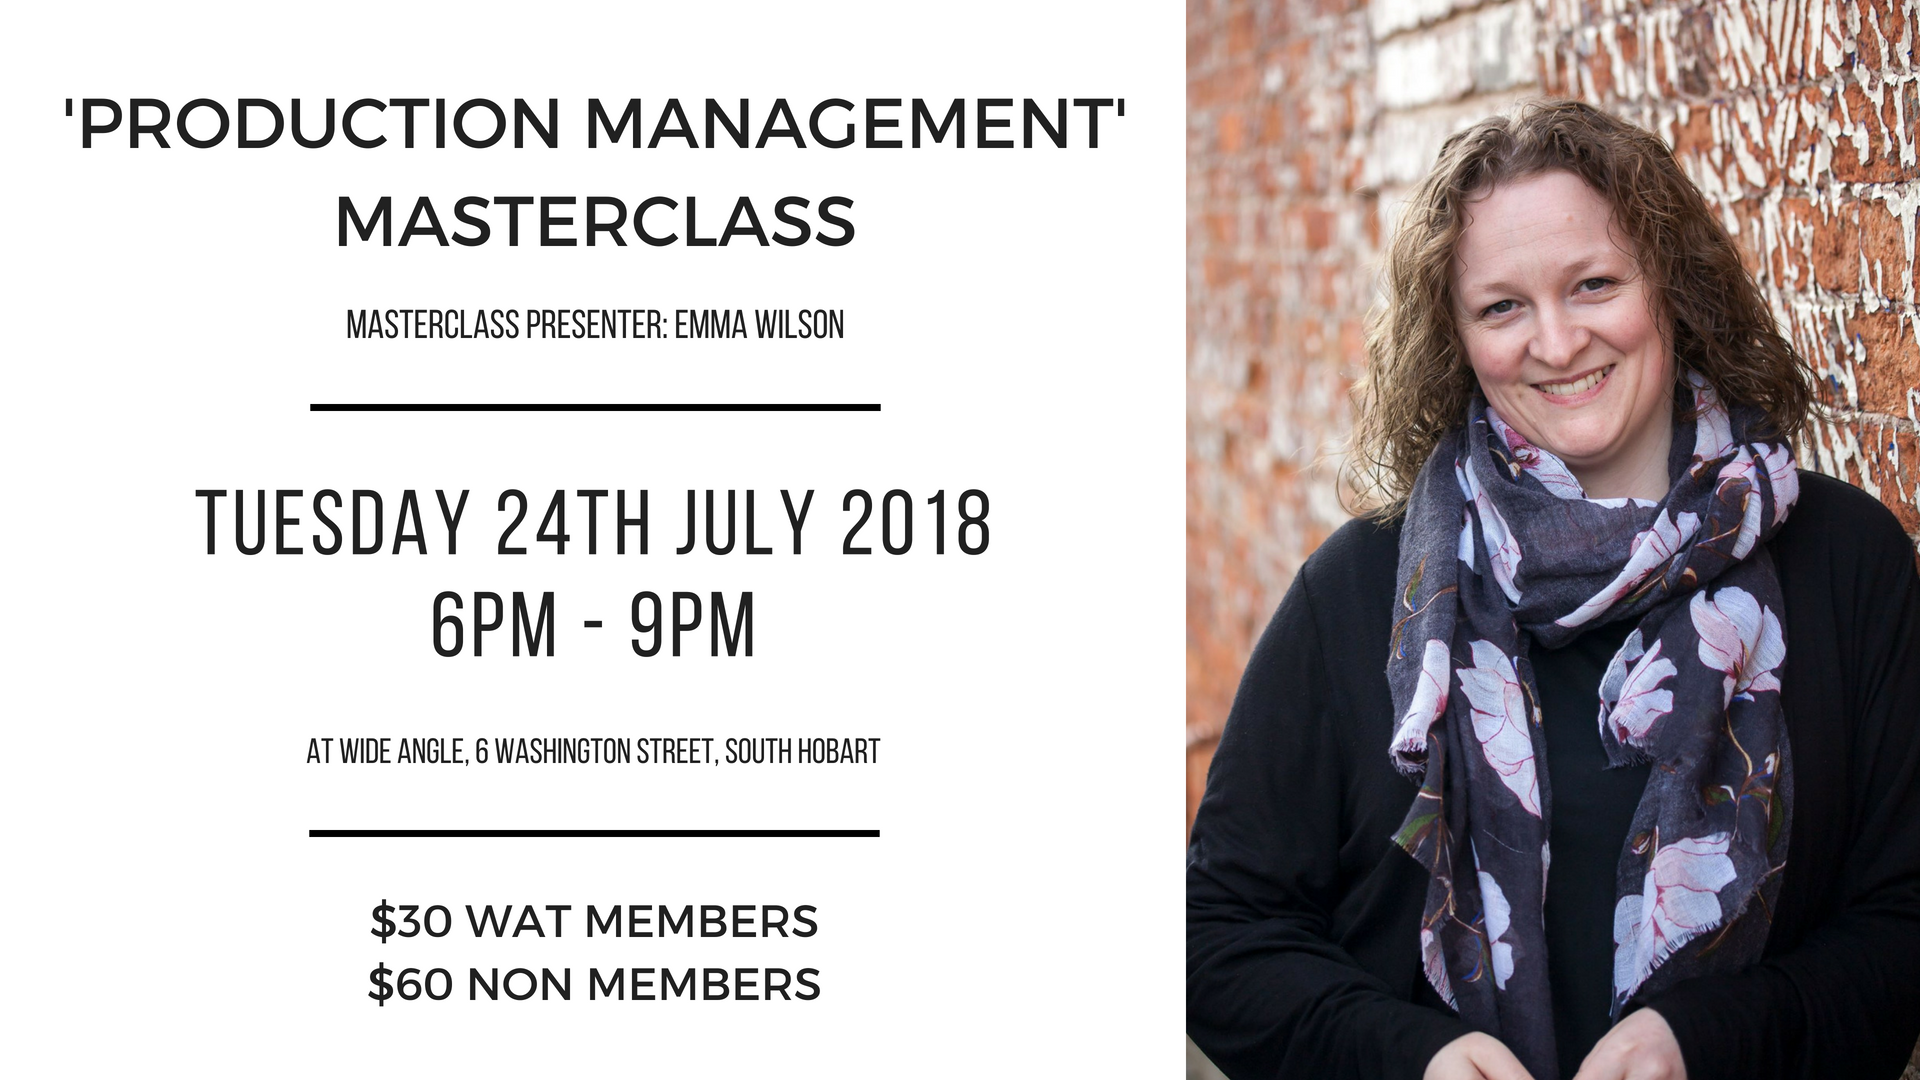 Emma_Wilson_Production_Manager_Masterclass_Tues_24th_July_2018_Facebook_Event_Cover.png